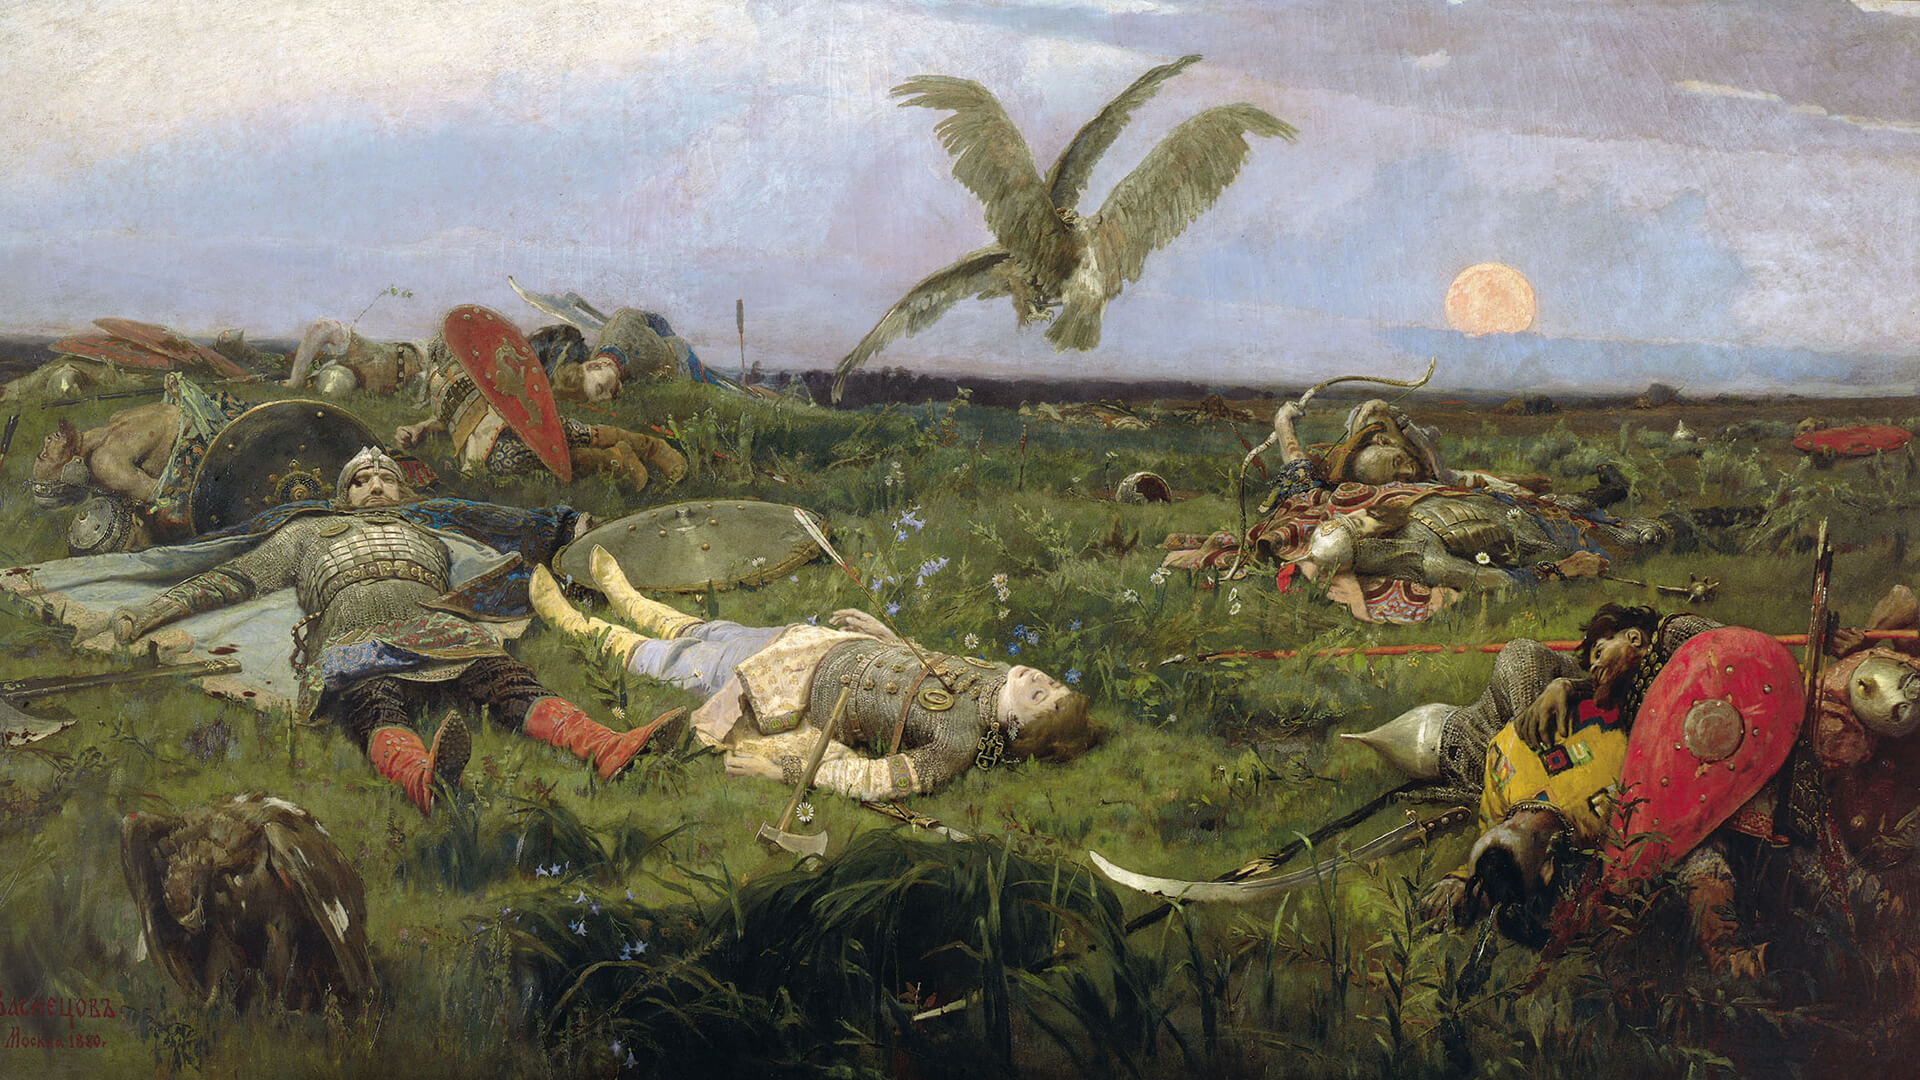 Viktor Vasnetsov-After the carnage Igor Svyatoslavich with Polovtsy_1920x1080